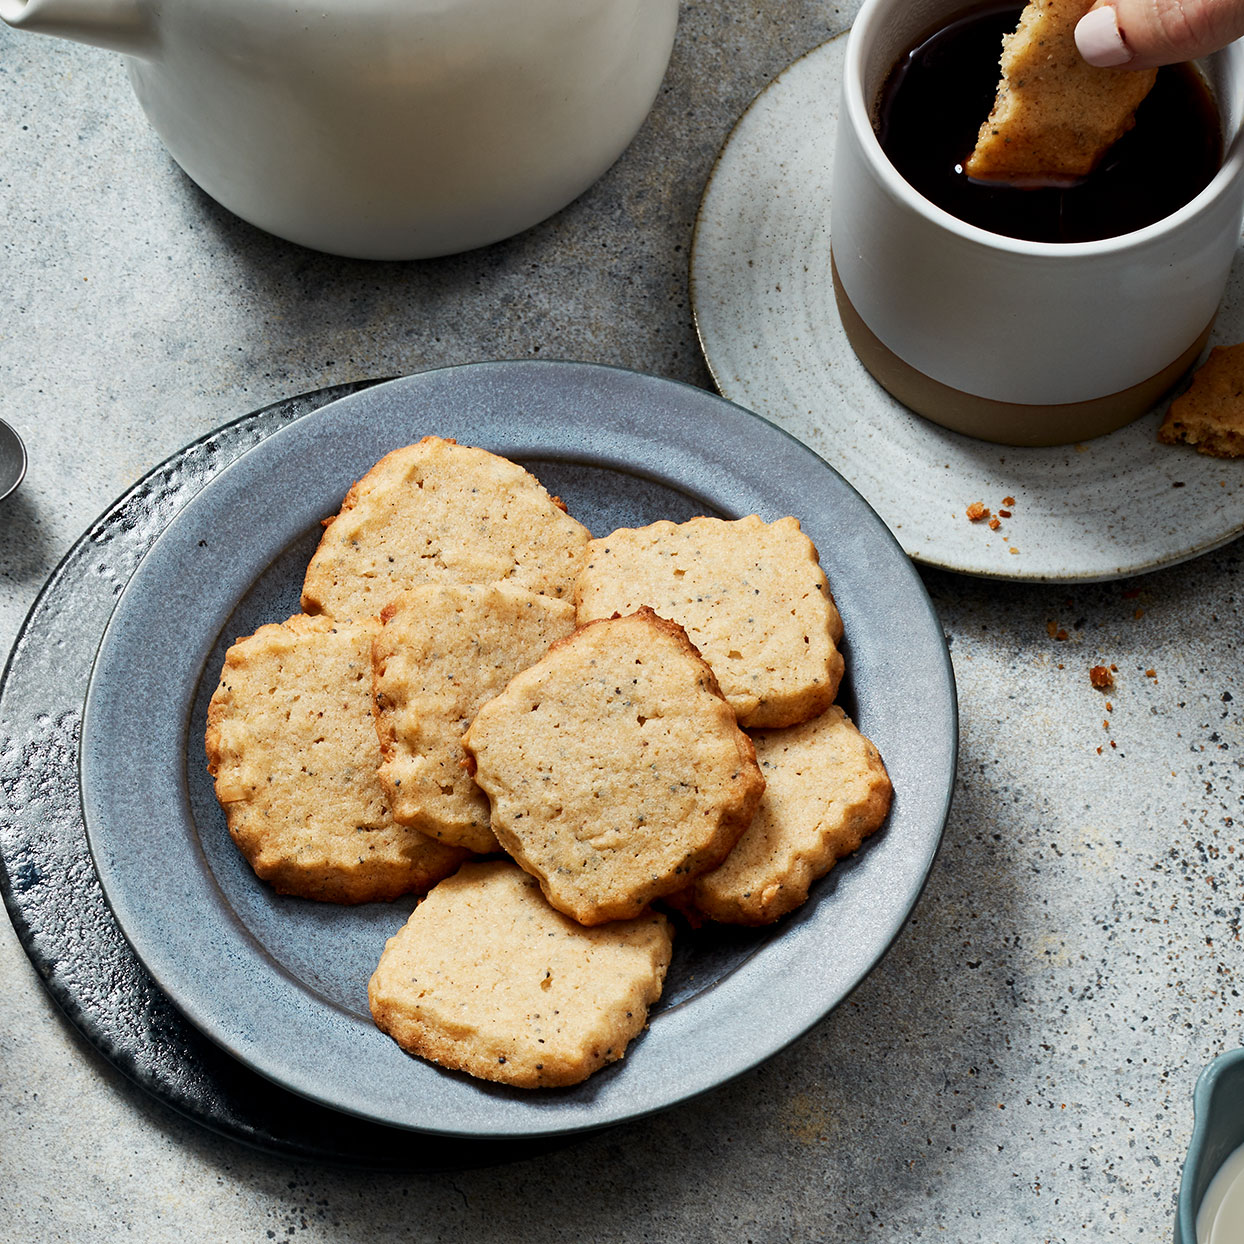 Renowned author and spice aficionado Lior Lev Sercarz loves these French sablé-style cookies so much, he sells a collection of five different flavors twice a year. In this variation, he uses tart amchoor (ground dried green mango) to give them a citrusy brightness. These healthy cookies will get you in the holiday spirit.